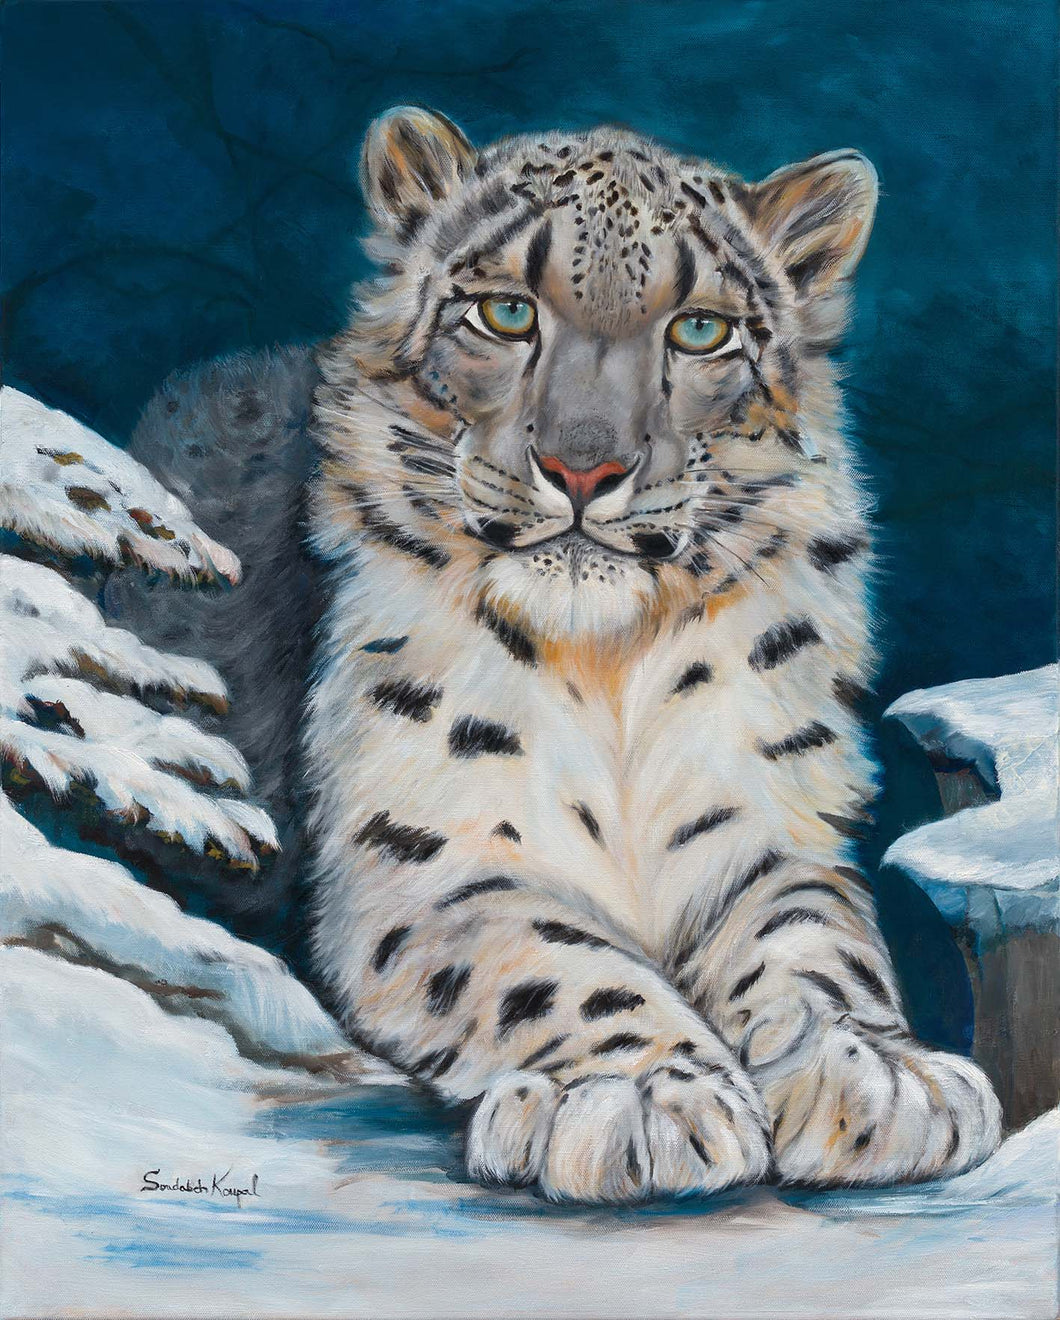 Greeting Card- Snow Leopard